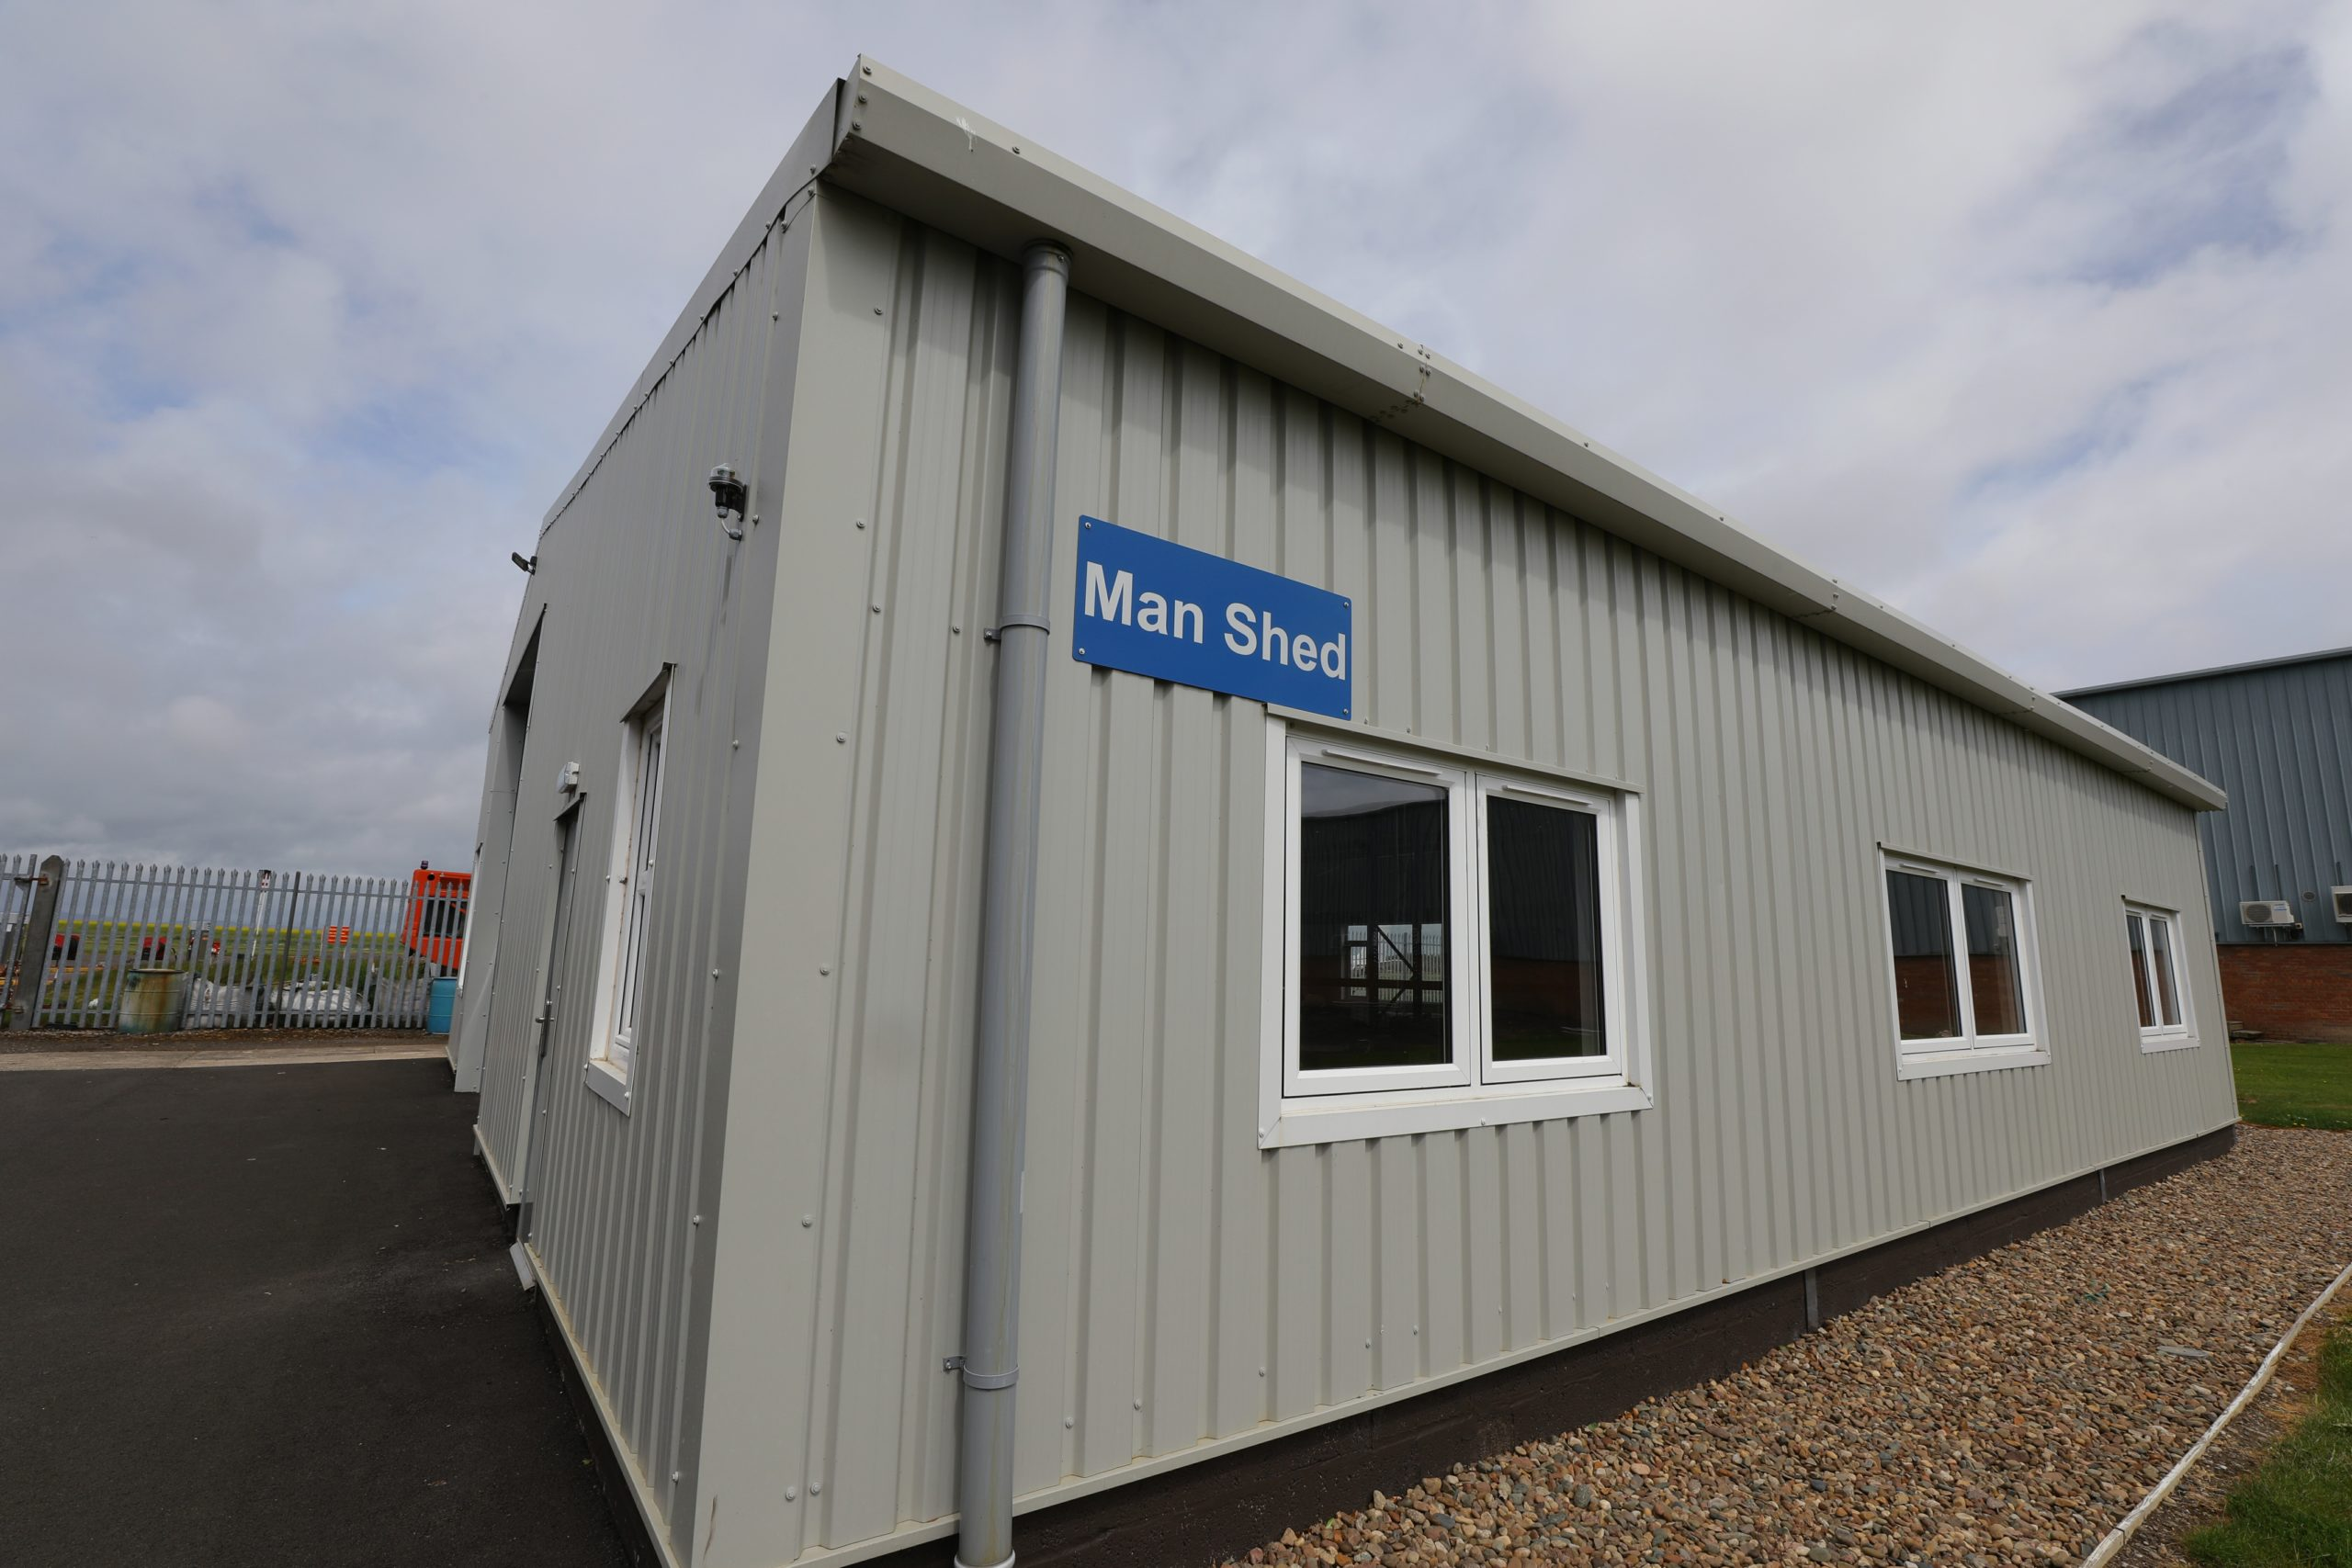 The Scone Airport Men's Shed.